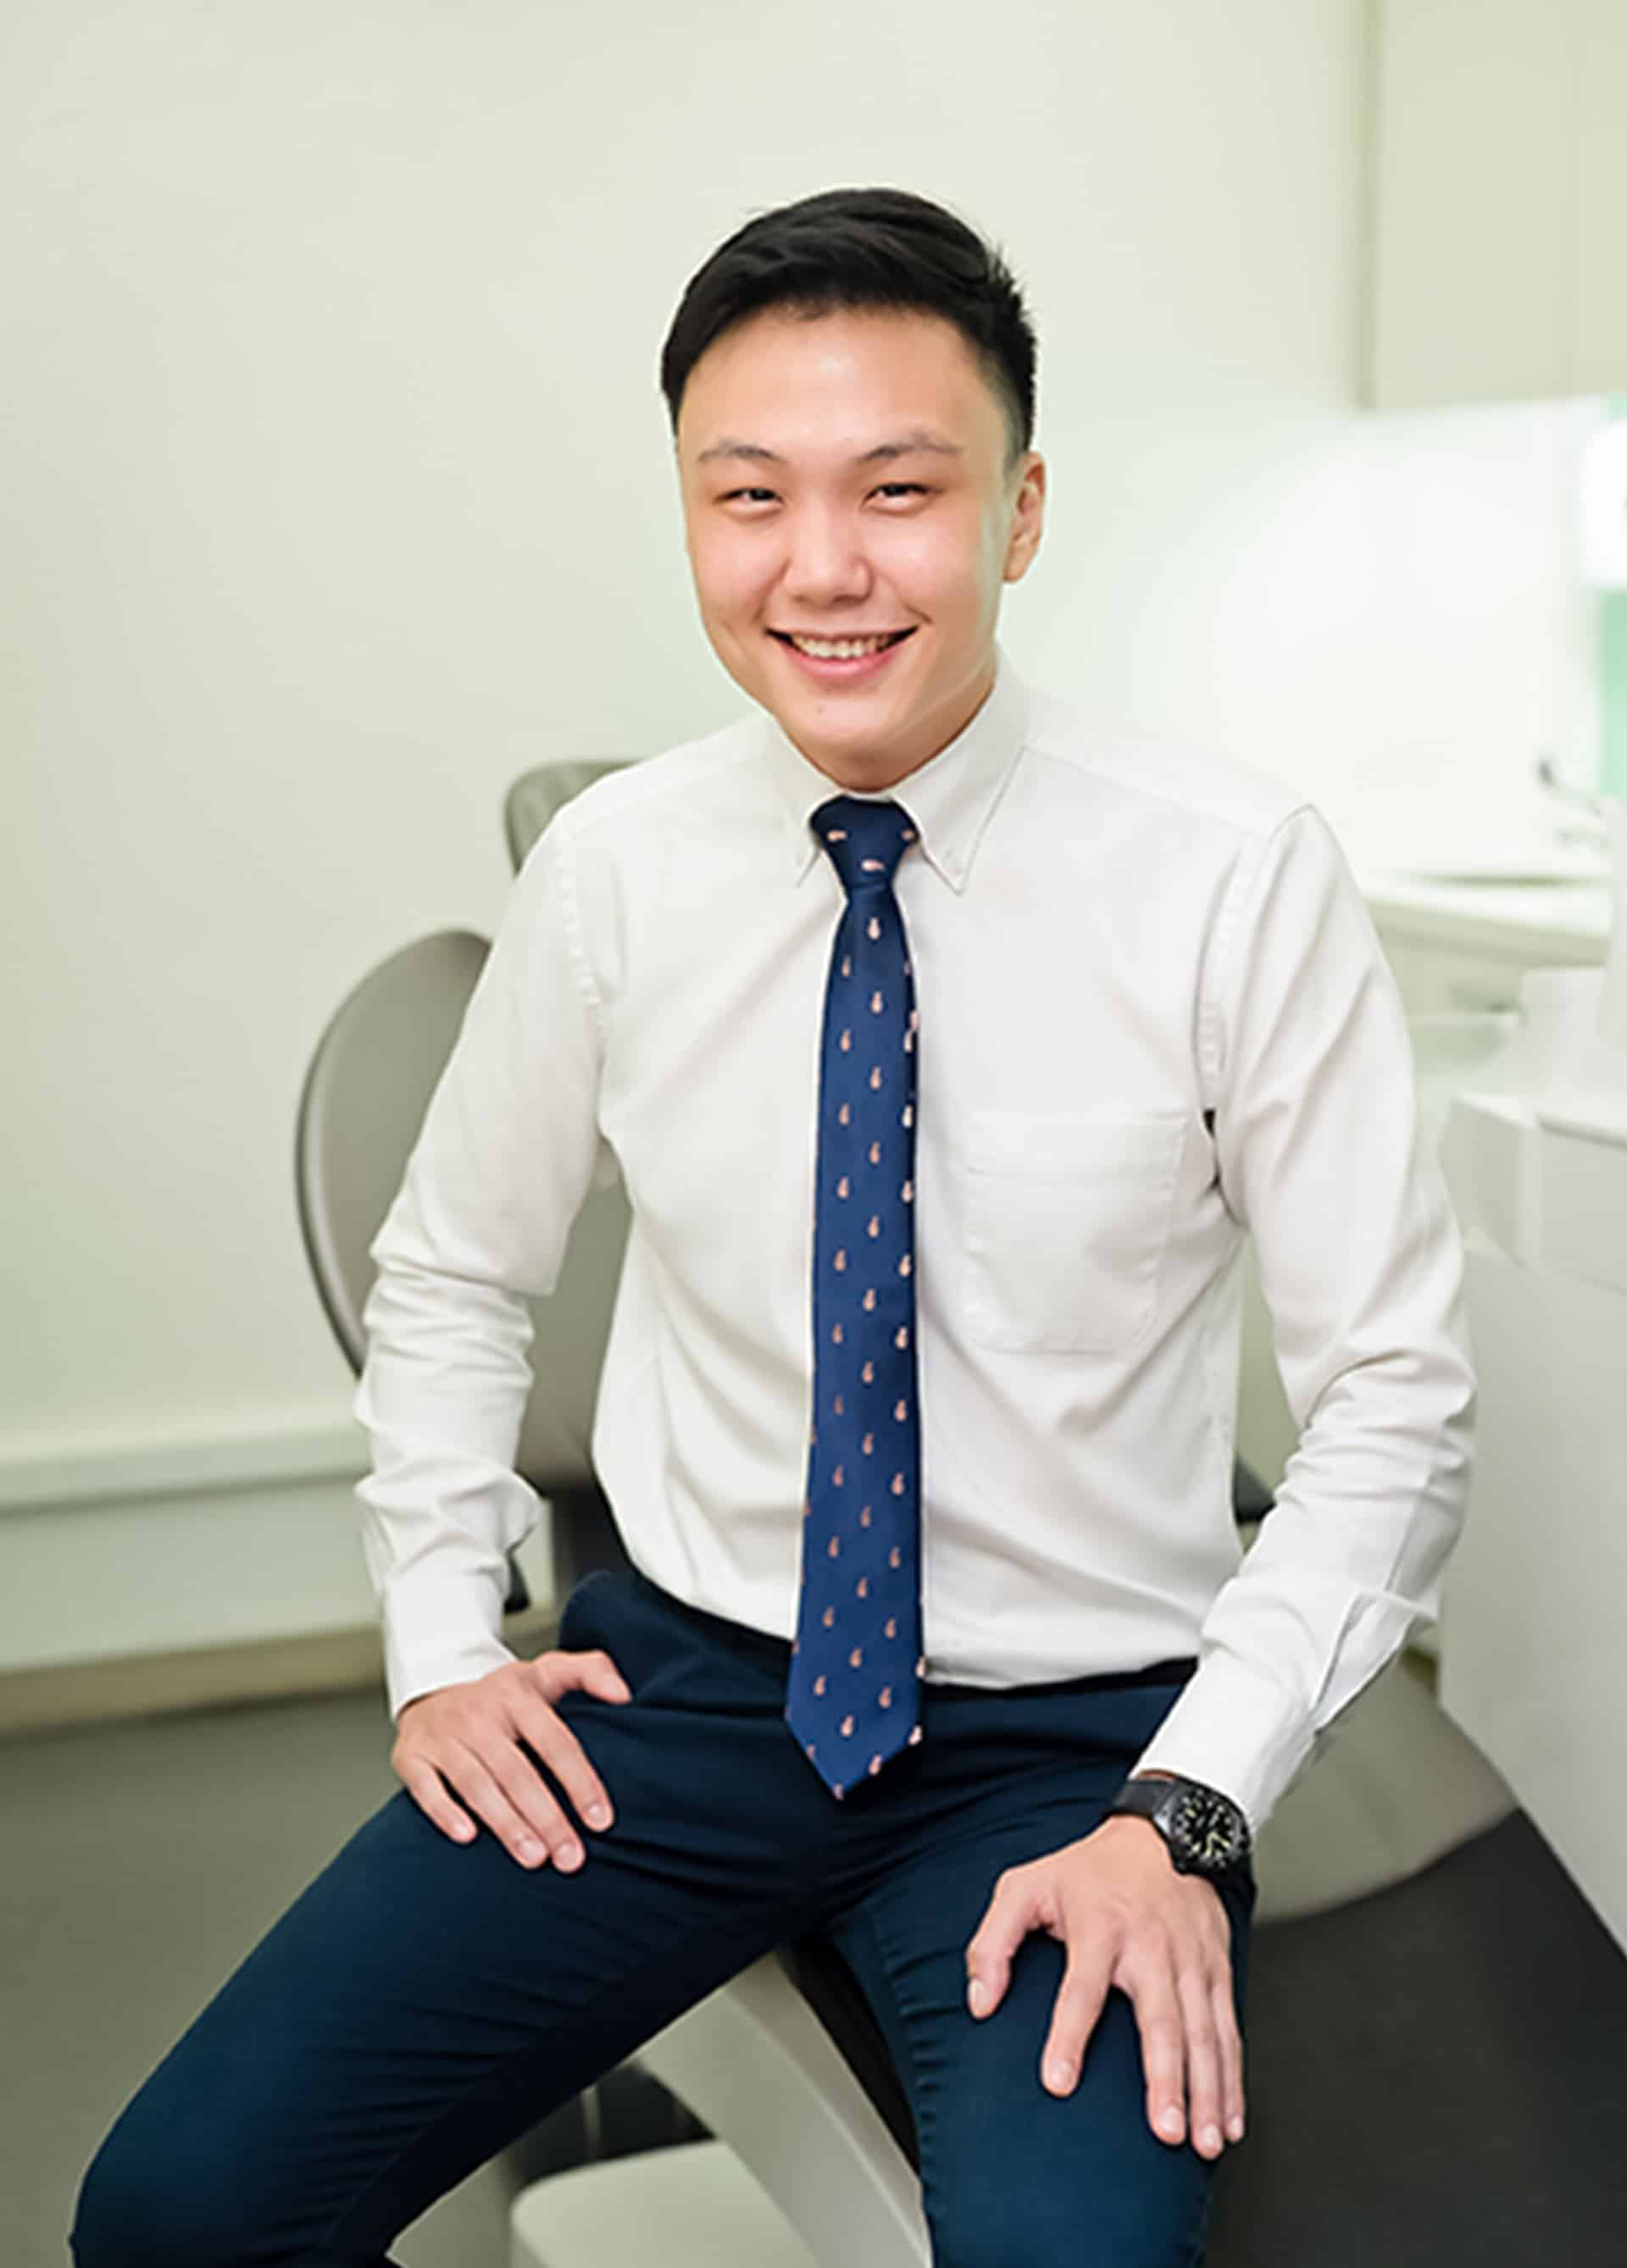 Dr Russell Chen - Profile